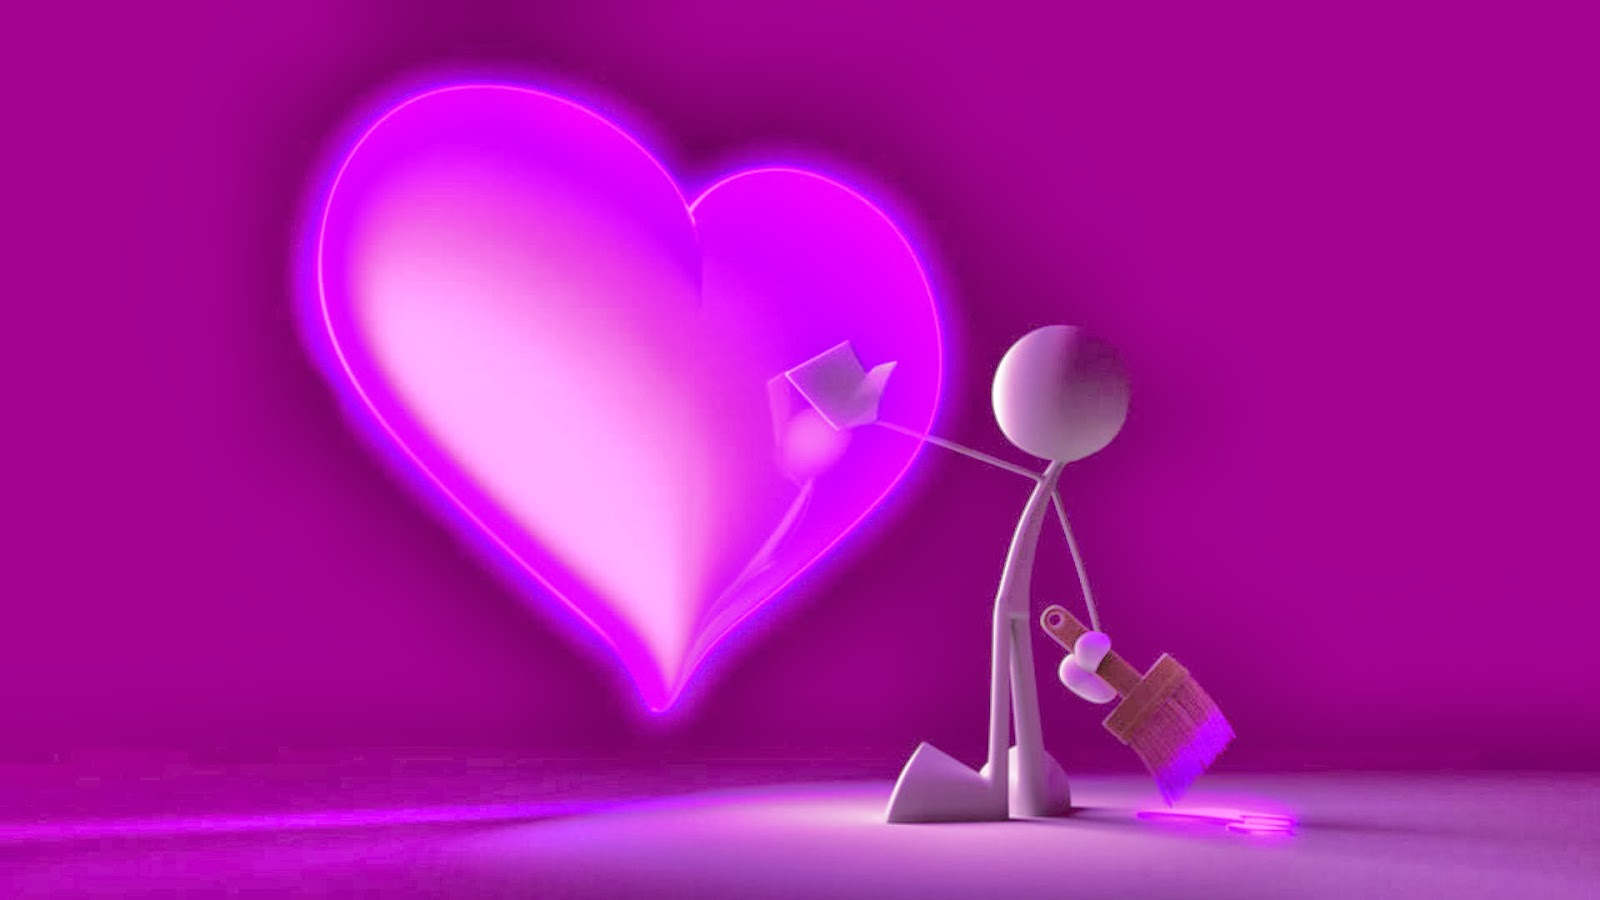 Love Wallpaper All New : All new wallpaper : 3d Love Paint Wallpaper